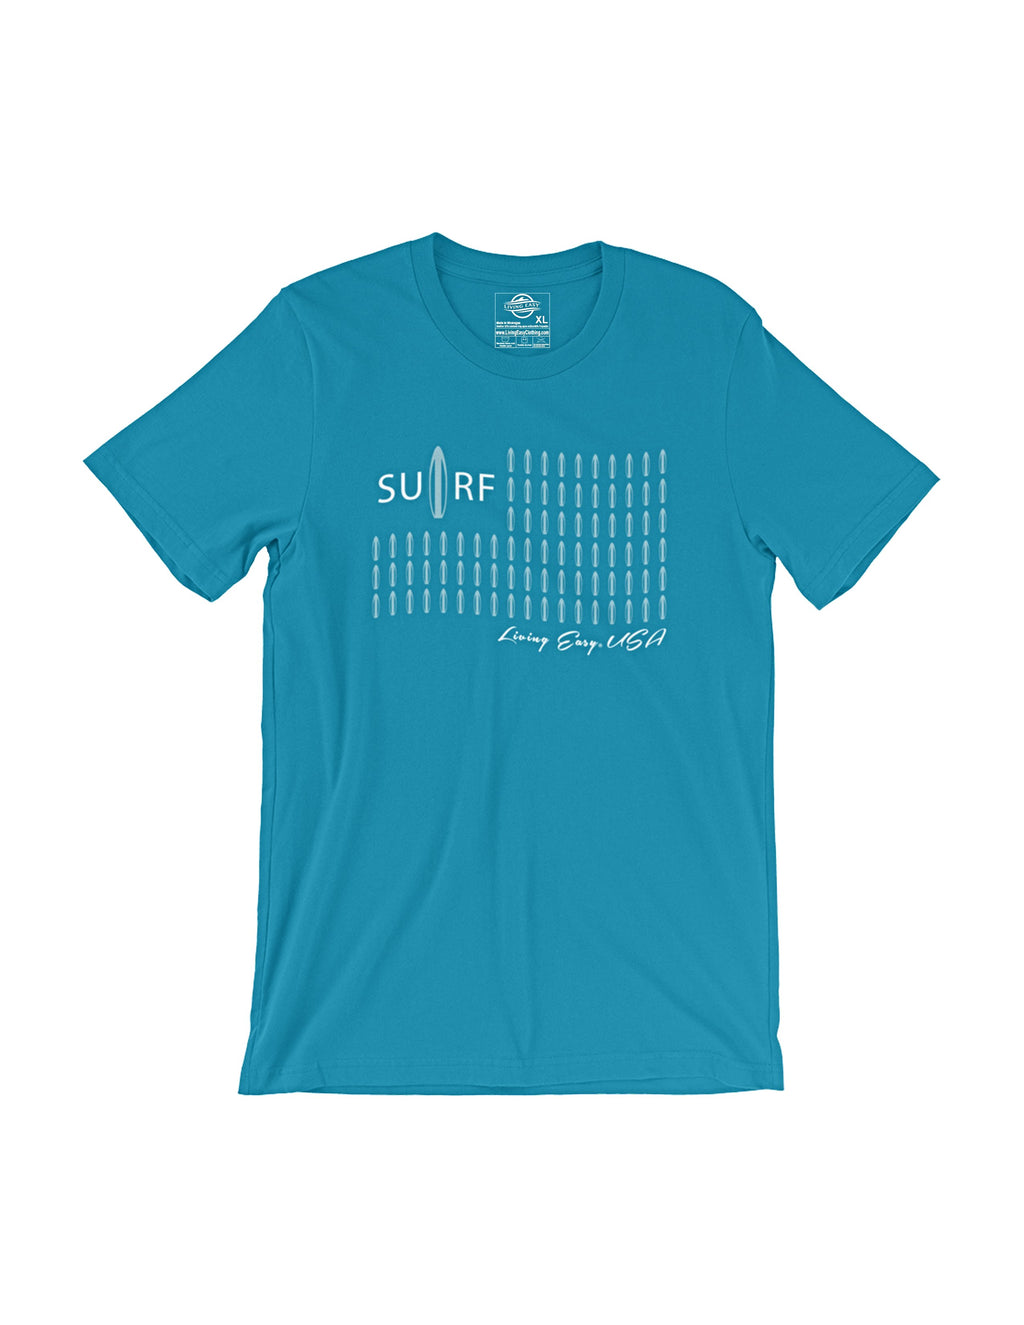 Living Easy® Surf USA Tee